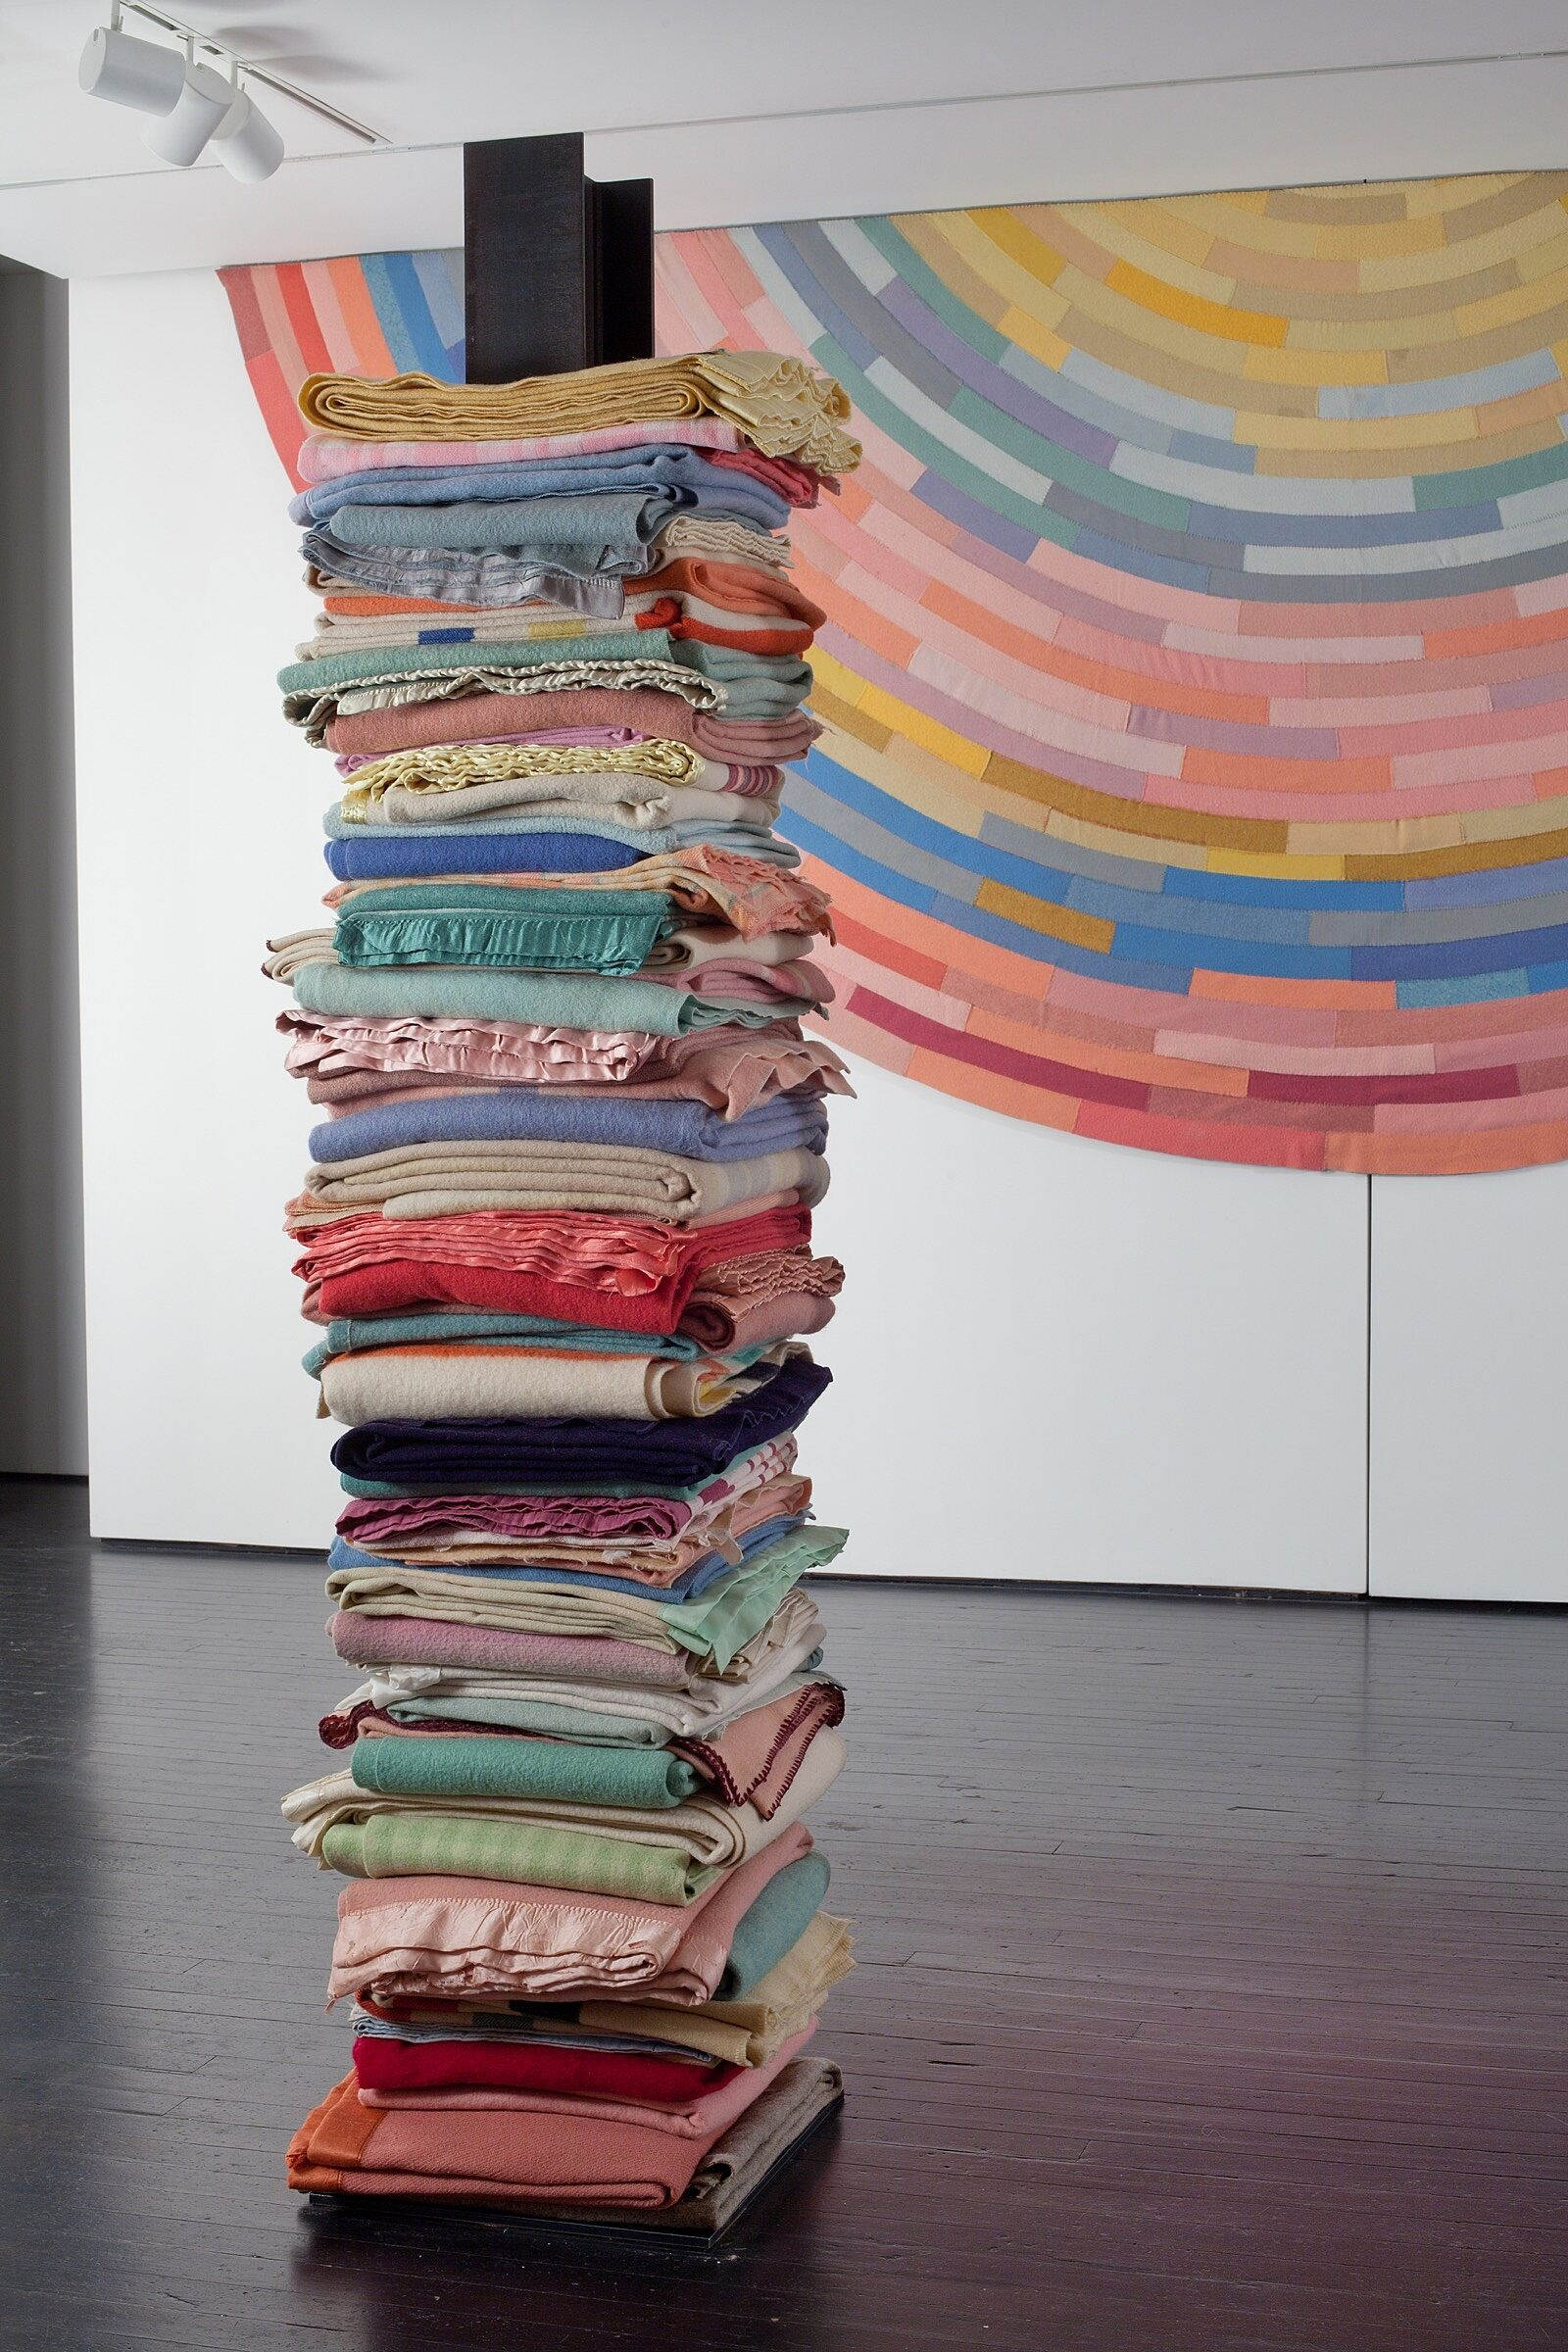 A large stack of multi-colored blankets.